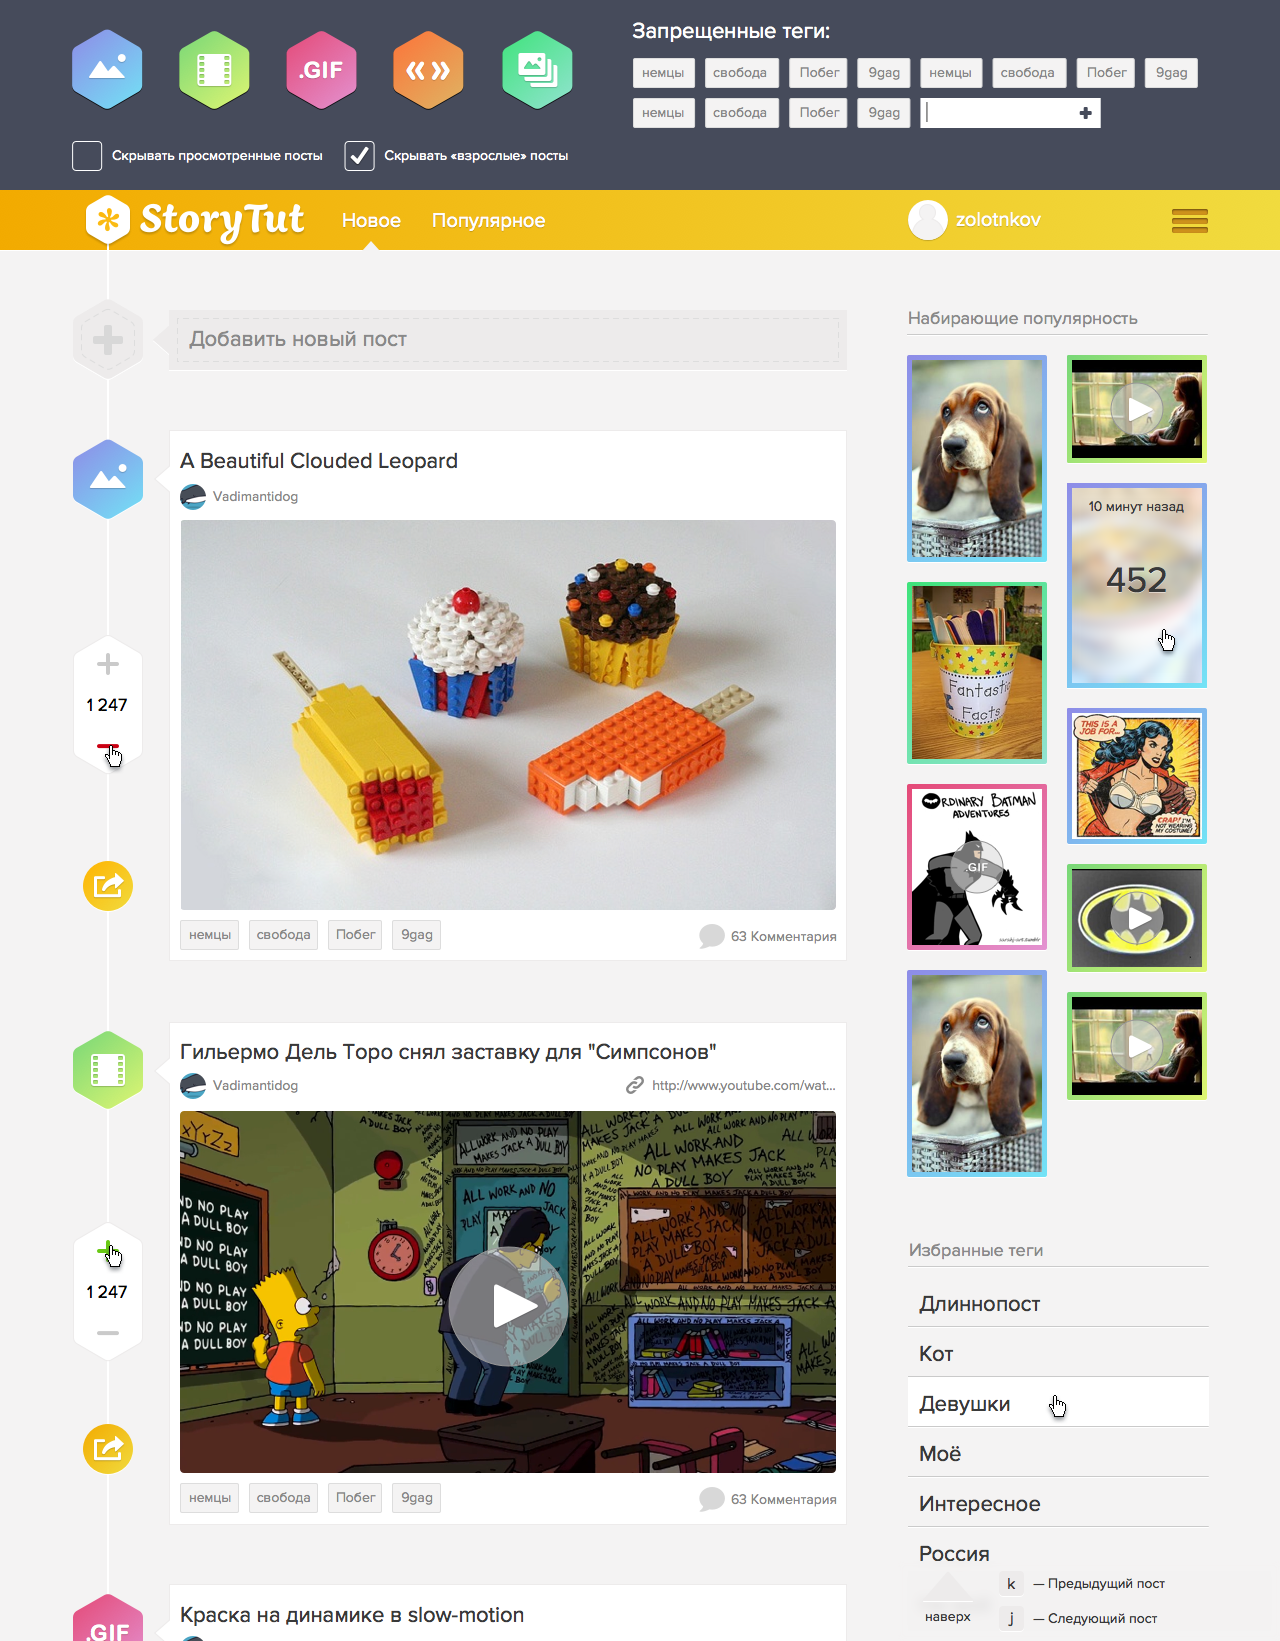 feed_page_full.png by Sergey Zolotnikov